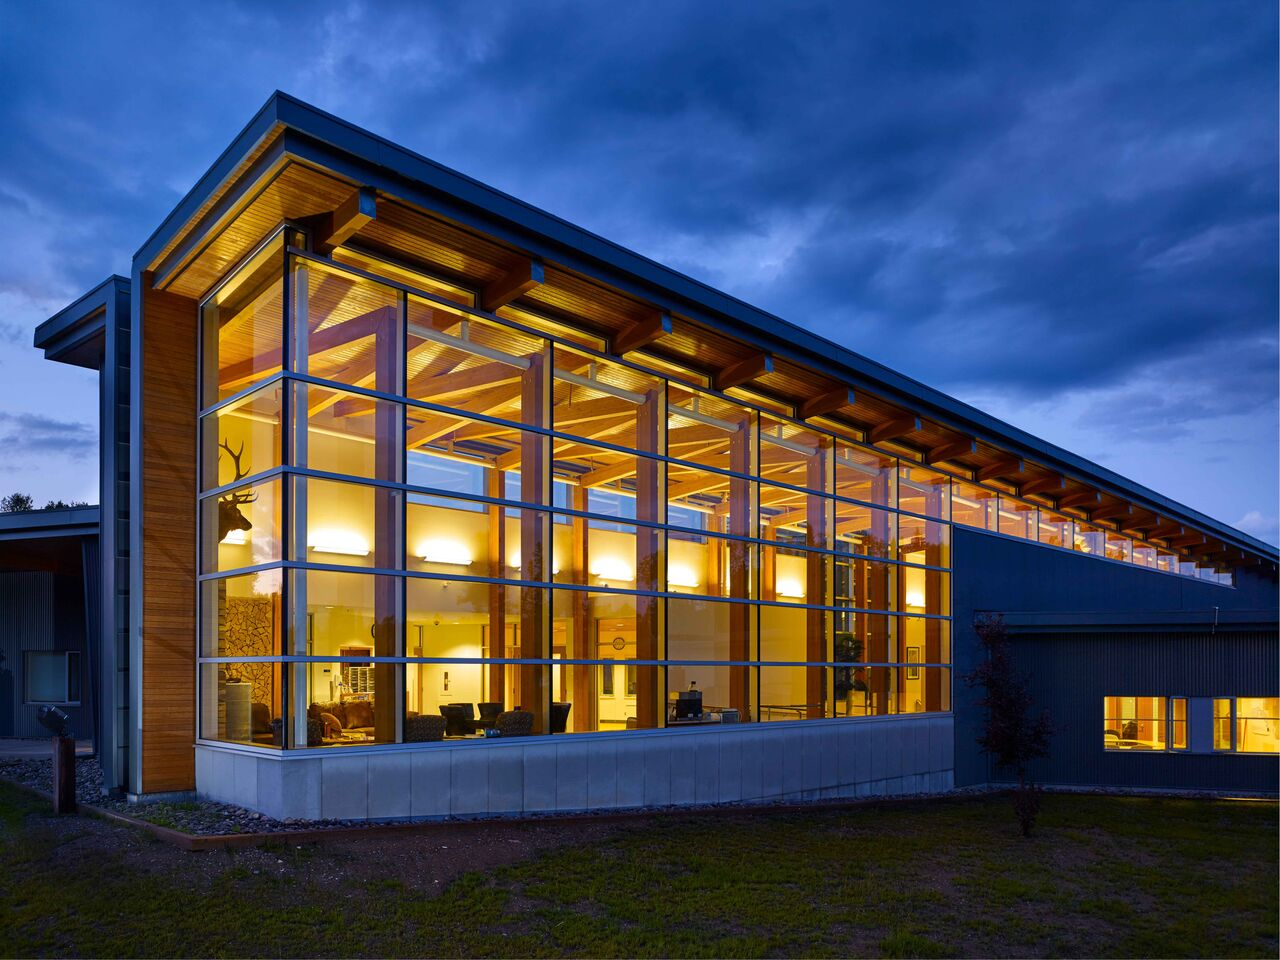 Prophet River Multiplex<abbr>Prophet River, B.C. Canada<br>Douglas fir glulam posts, tongue and groove roof decking</abbr>